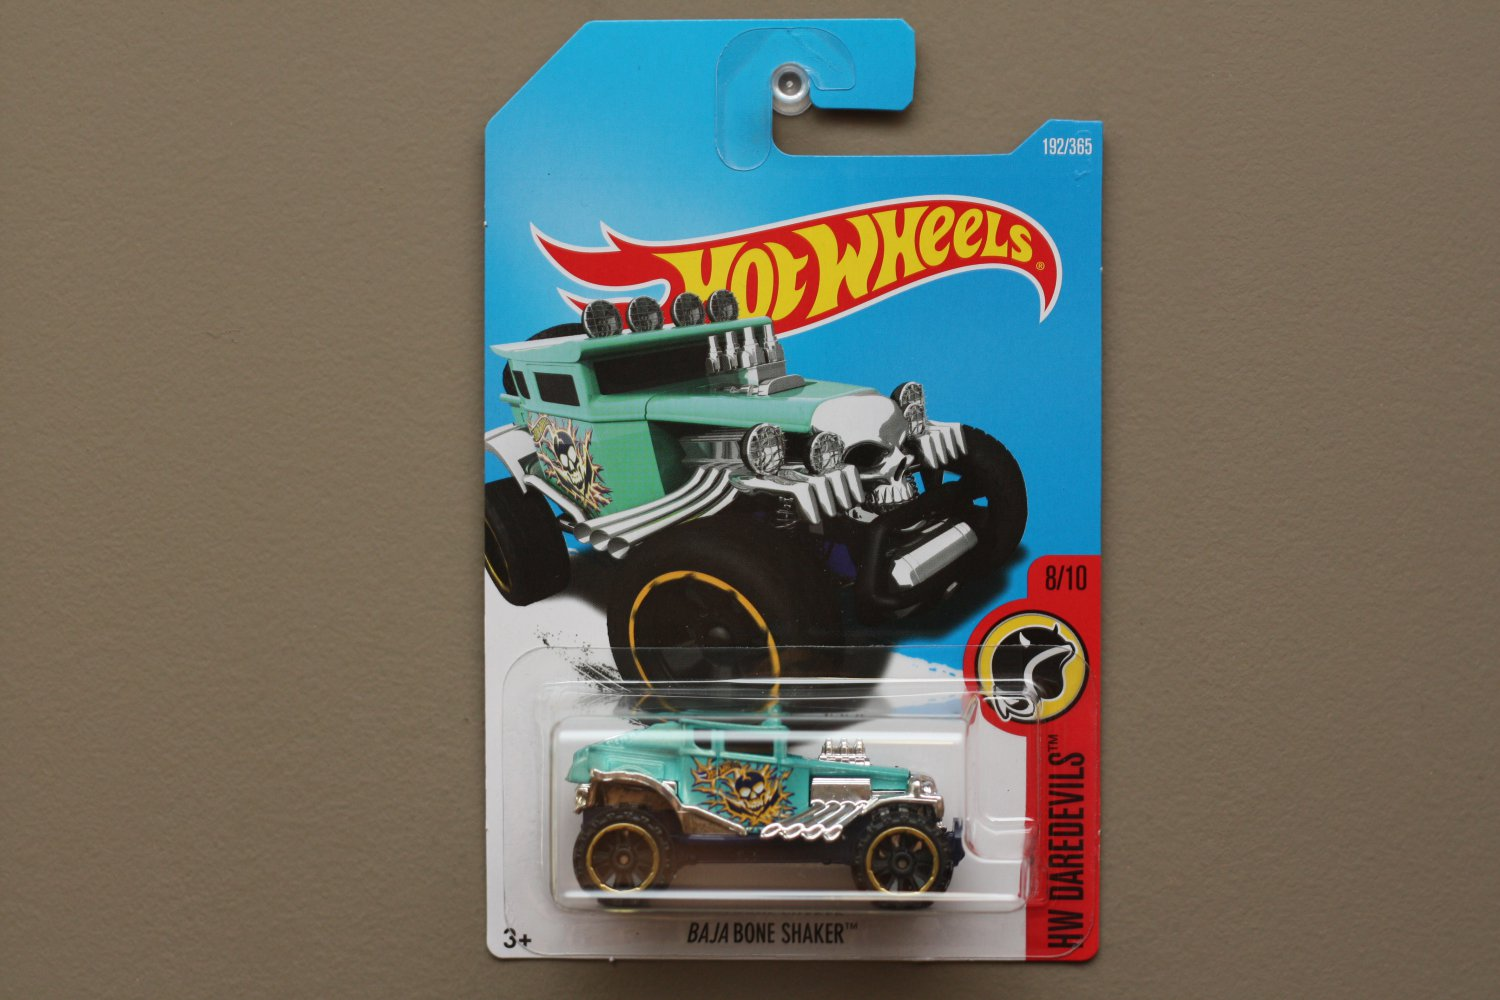 Hot Wheels 2017 HW Daredevils BAJA Bone Shaker (turquoise)